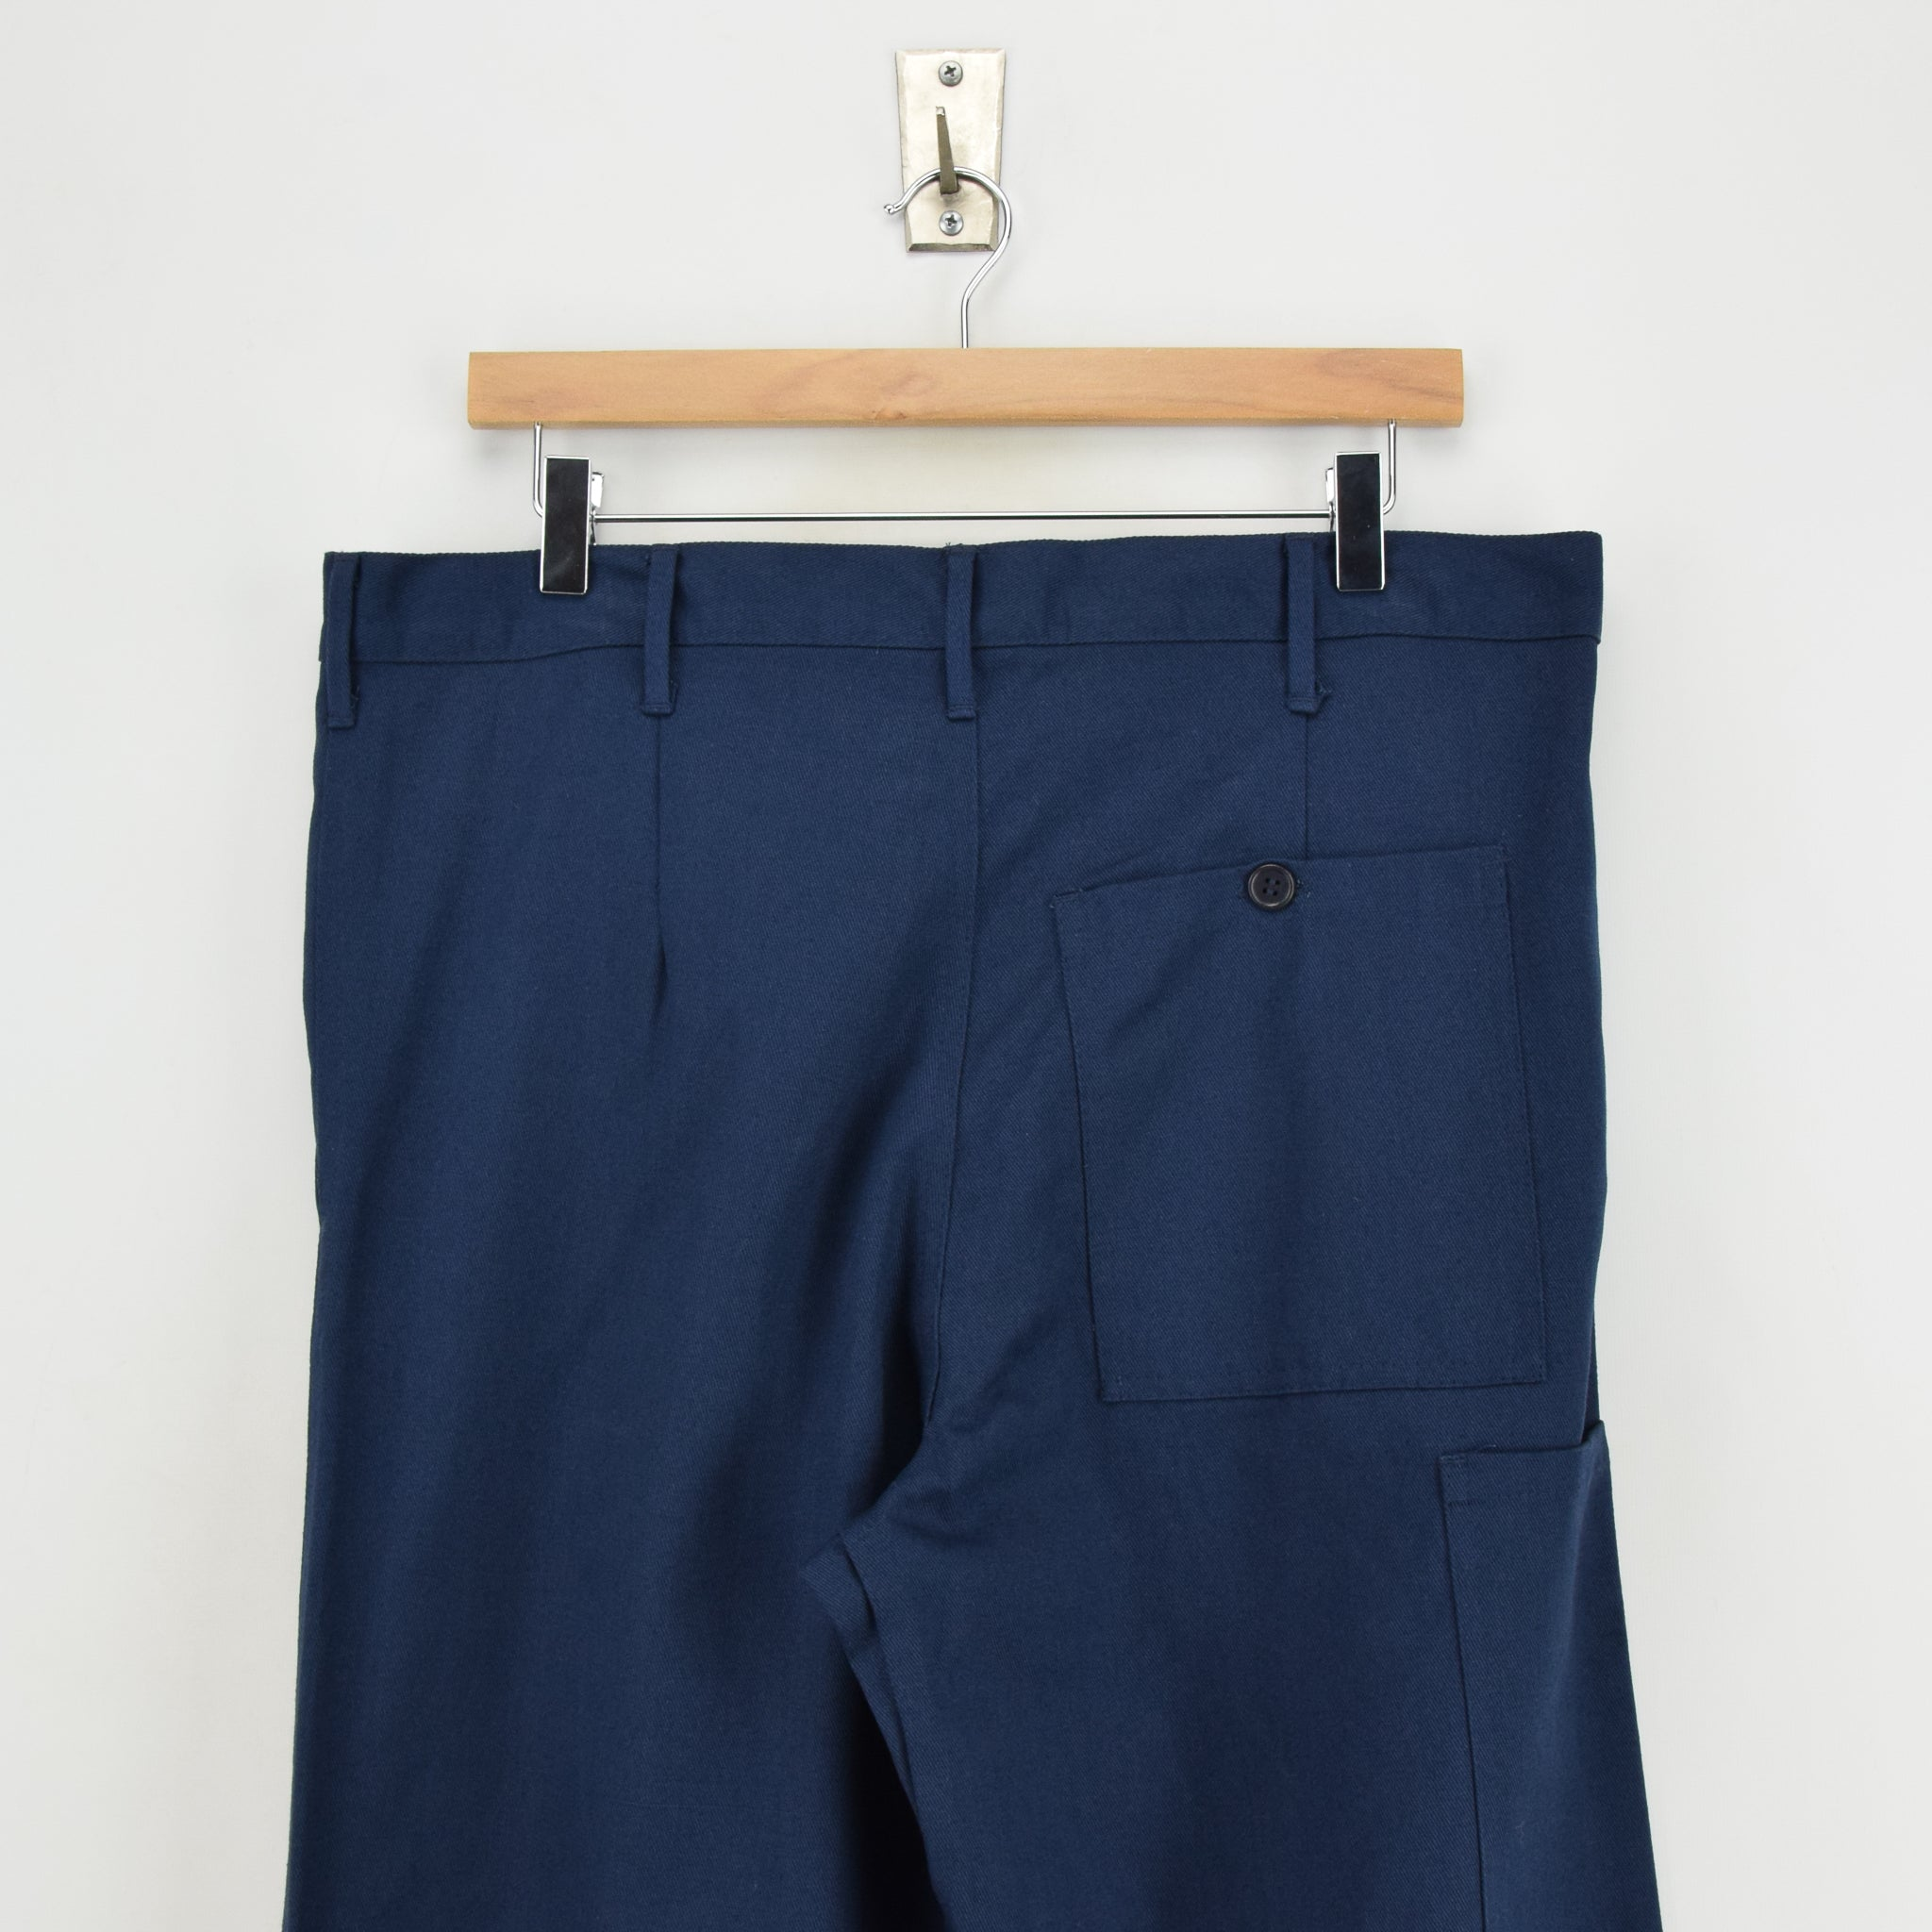 Vintage Workwear Blue French Style Work Utility Trousers Italy Made 34 W 32 L waist